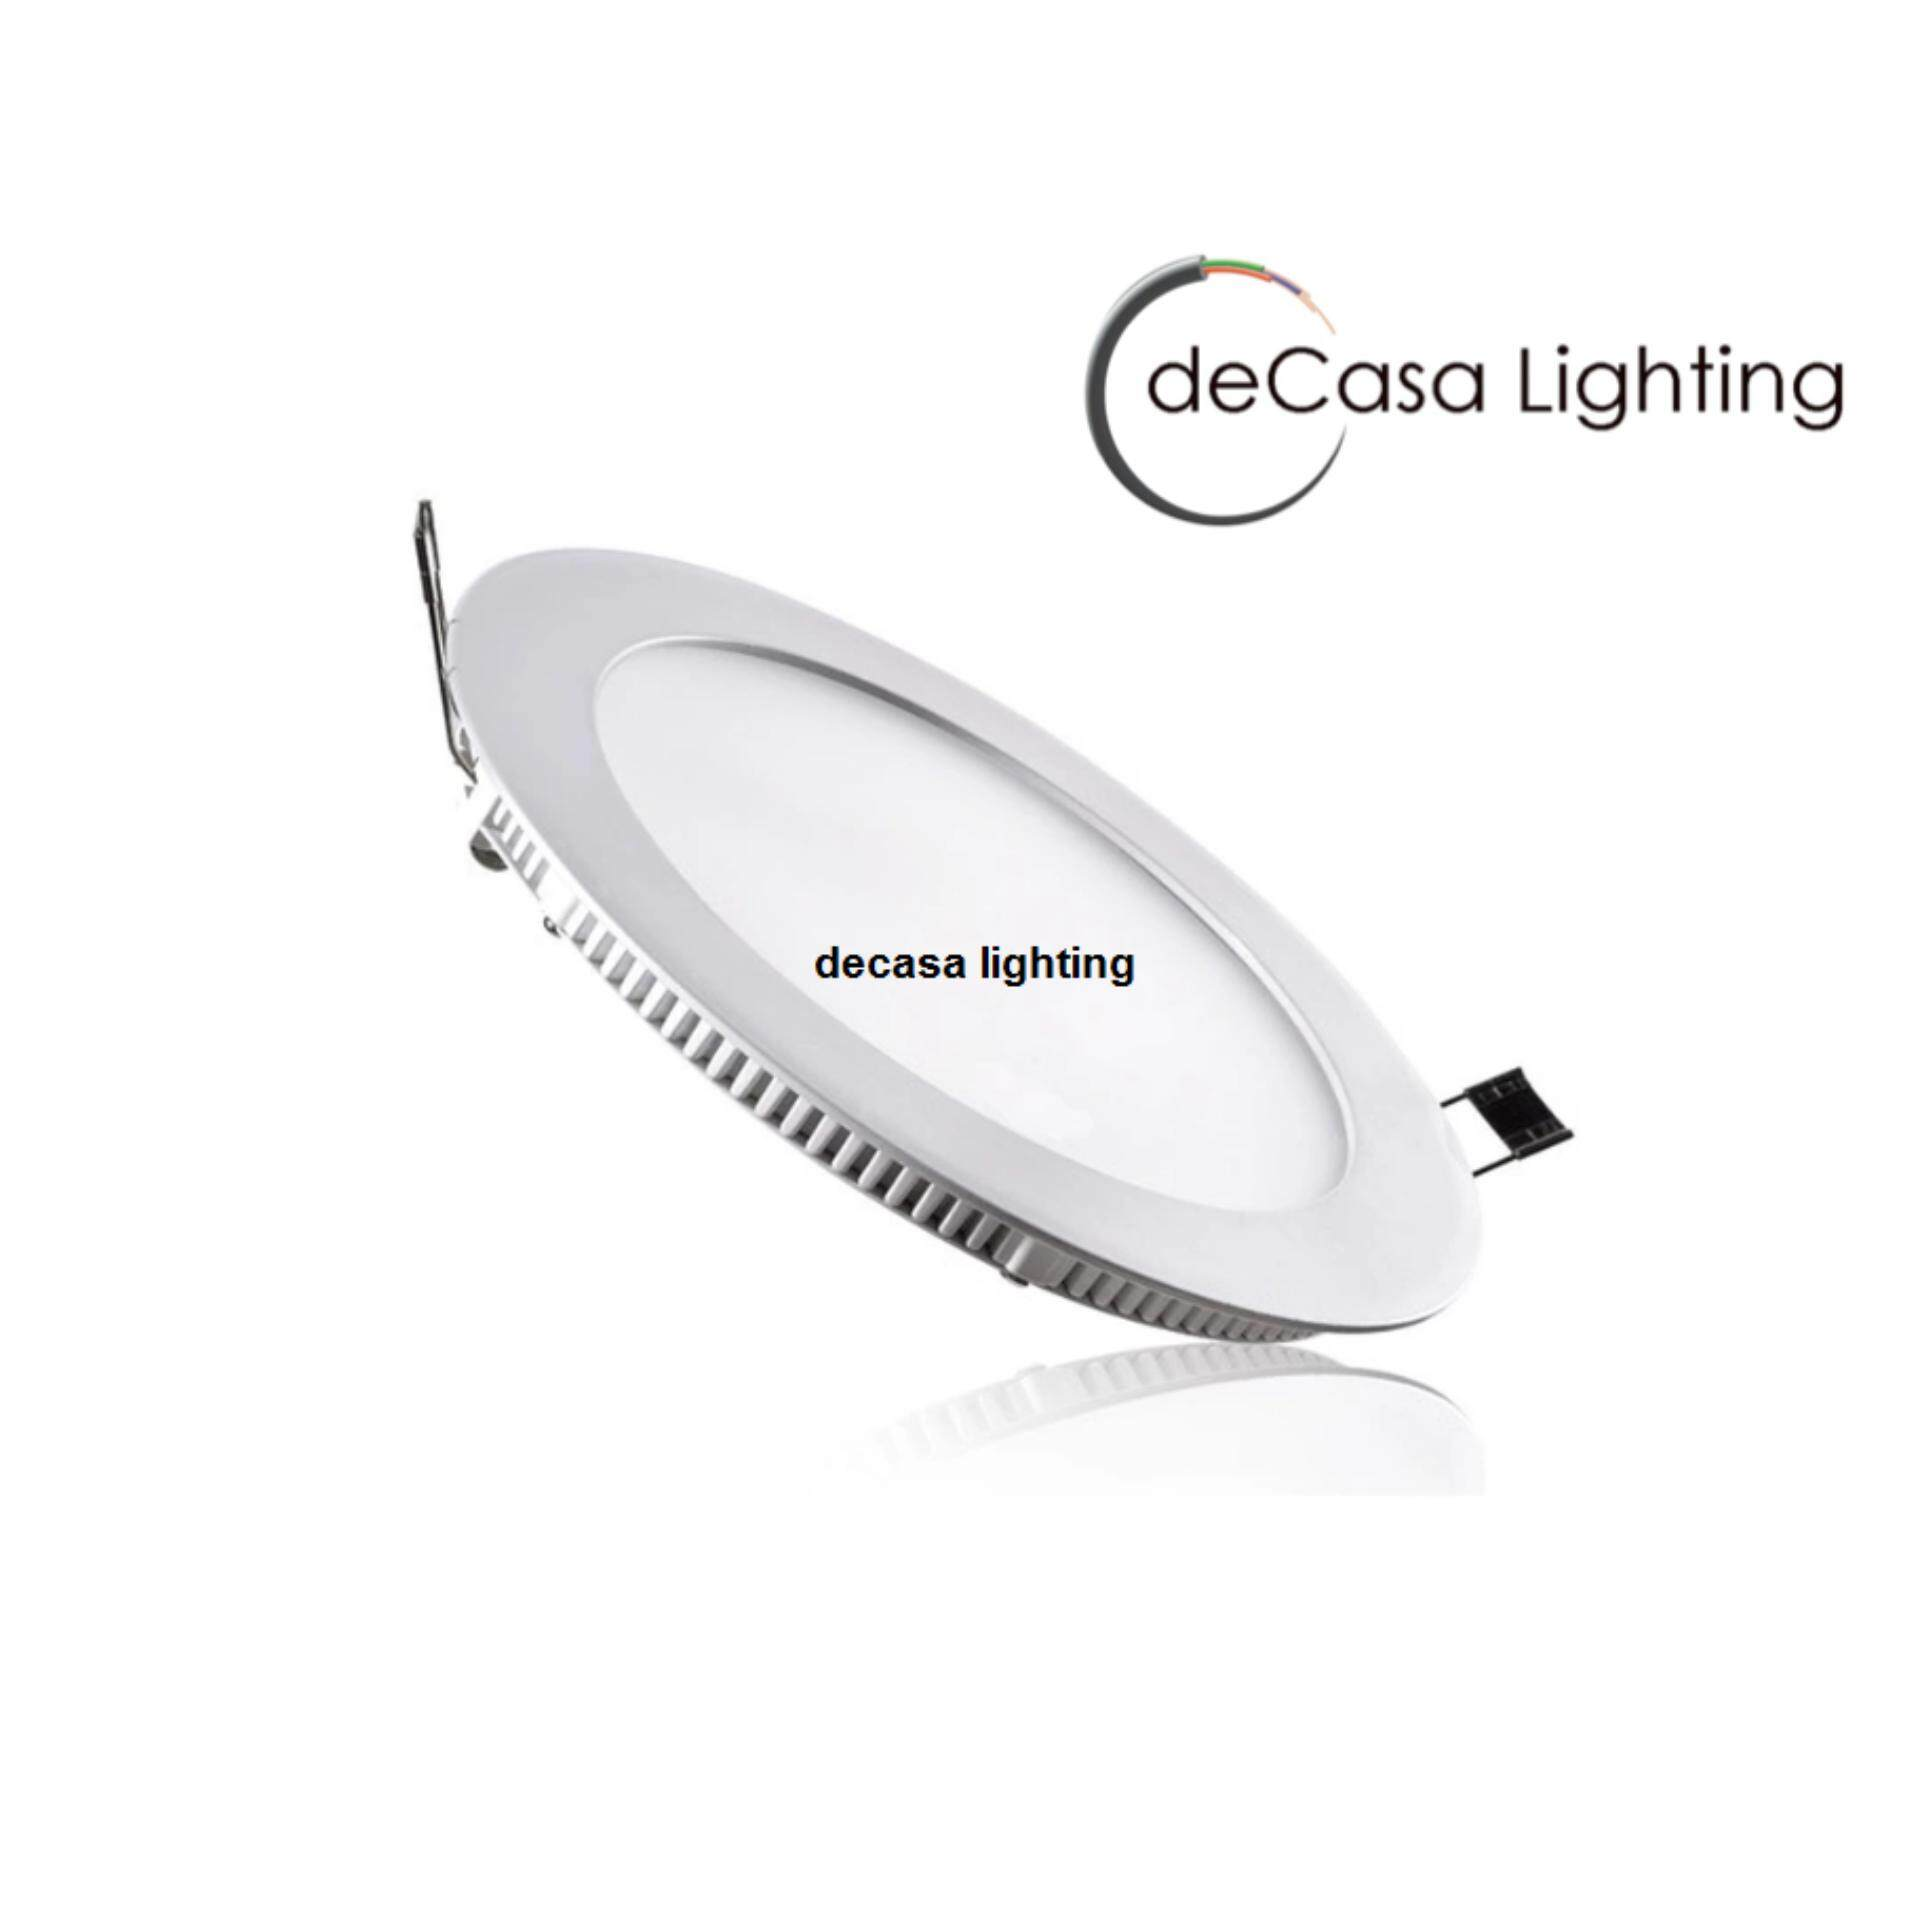 promo code 18f5e 701bc 12w Led Recessed Ceiling Light Round Downlight Daylight DECASA 12W LED  ROUND DOWNLIGHT 12W DAYLIGHT (LY-DL12W-RD-DAYLIGHT)